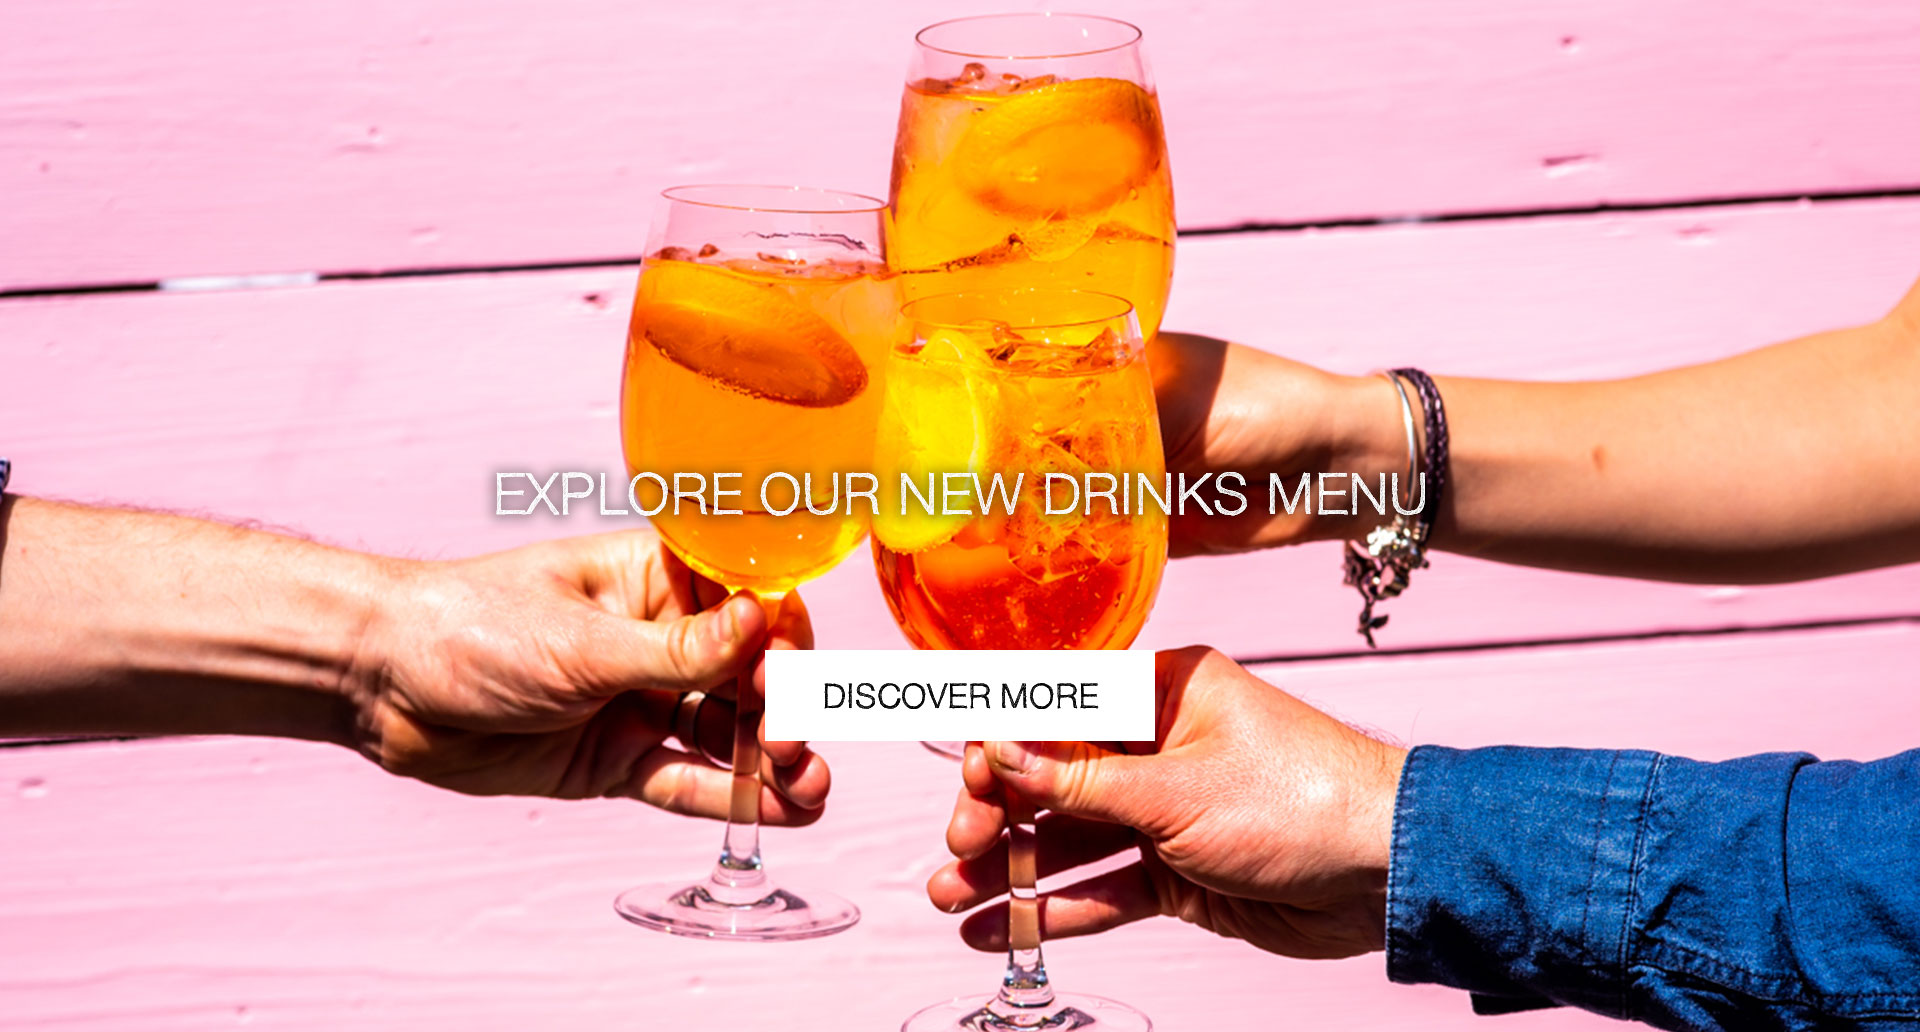 Our New Drinks Menu at The Cape Of Good Hope